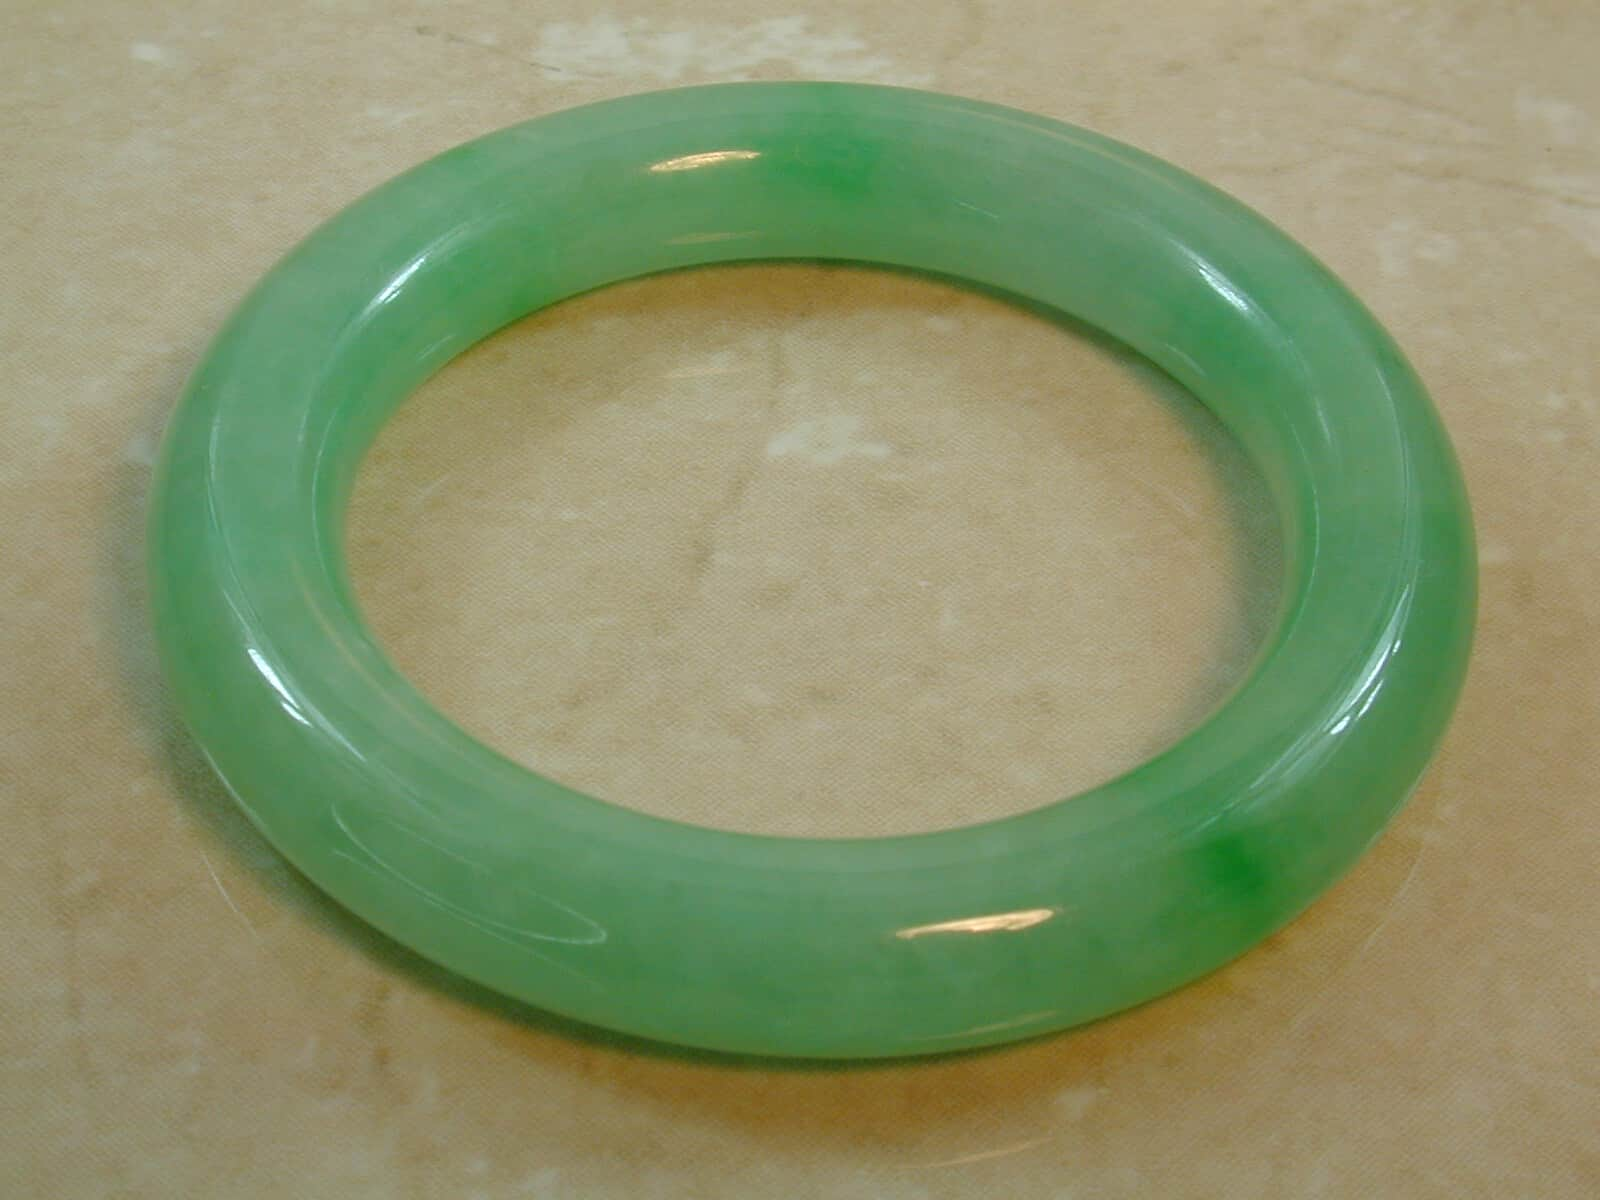 filled jewellery jade bracelet product genuine find jewelry vintage bangles retro gold estate